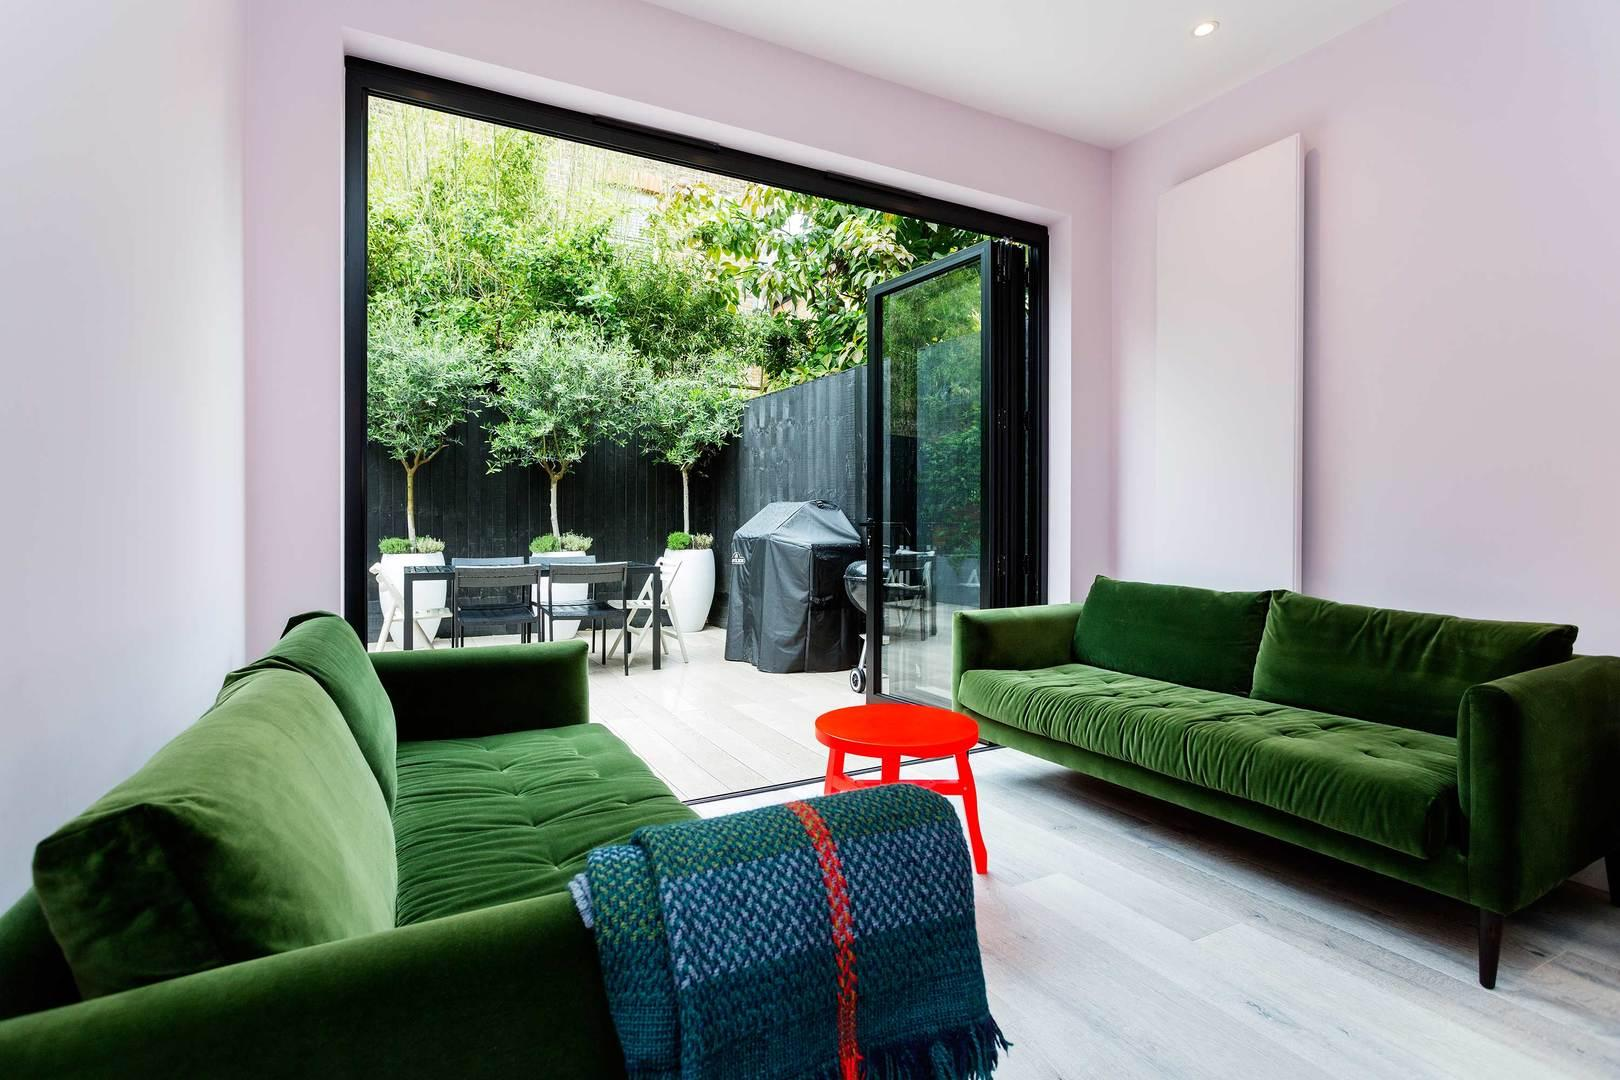 Property Image 2 - Sophisticated Shepherd's Bush Home with Roof Terrace